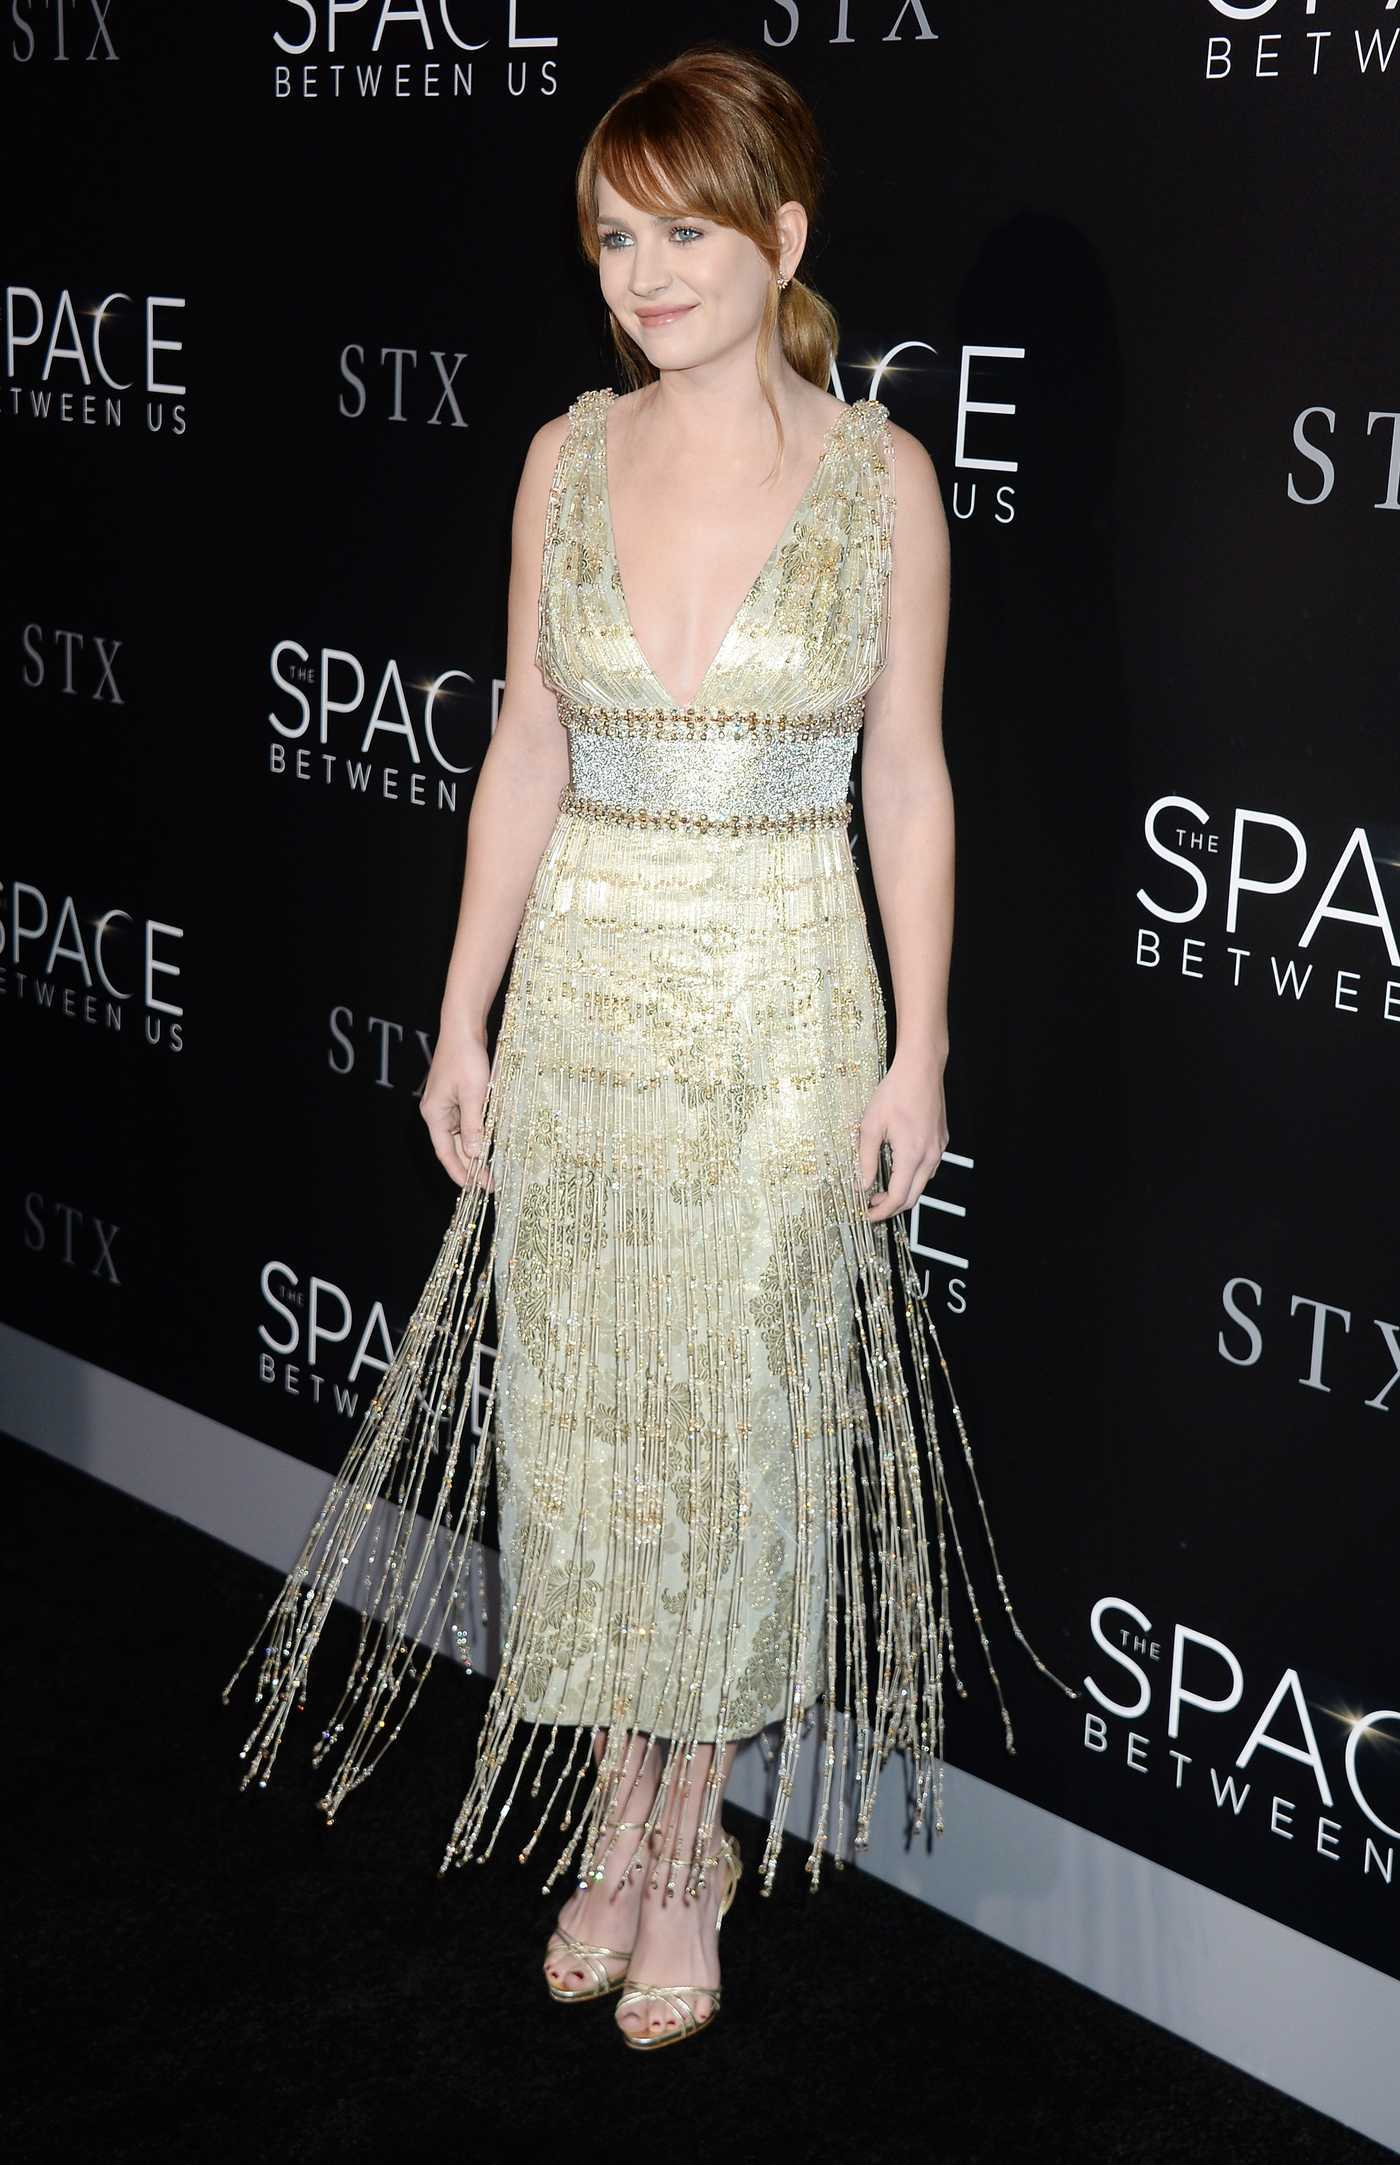 Britt Robertson at The Space Between Us Premiere in Los Angeles 01/17/2017